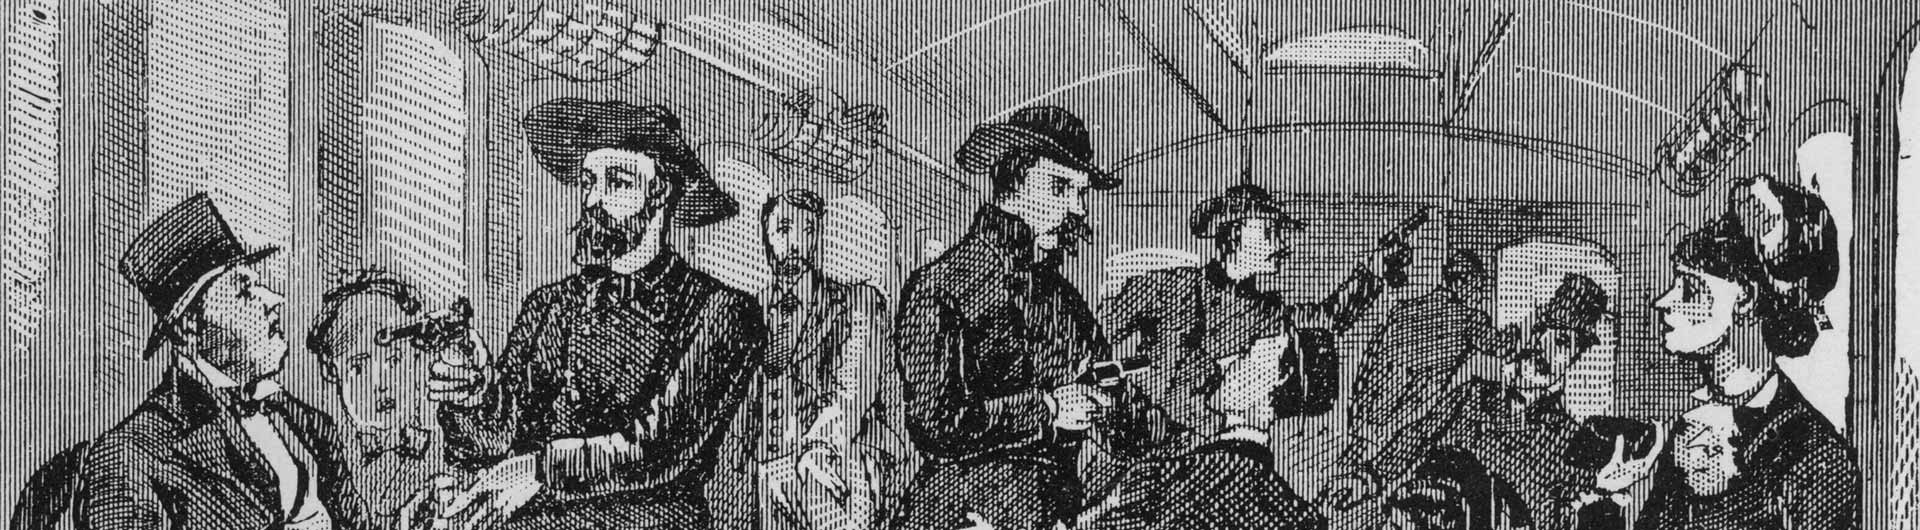 Old black and white illustration of people on a train